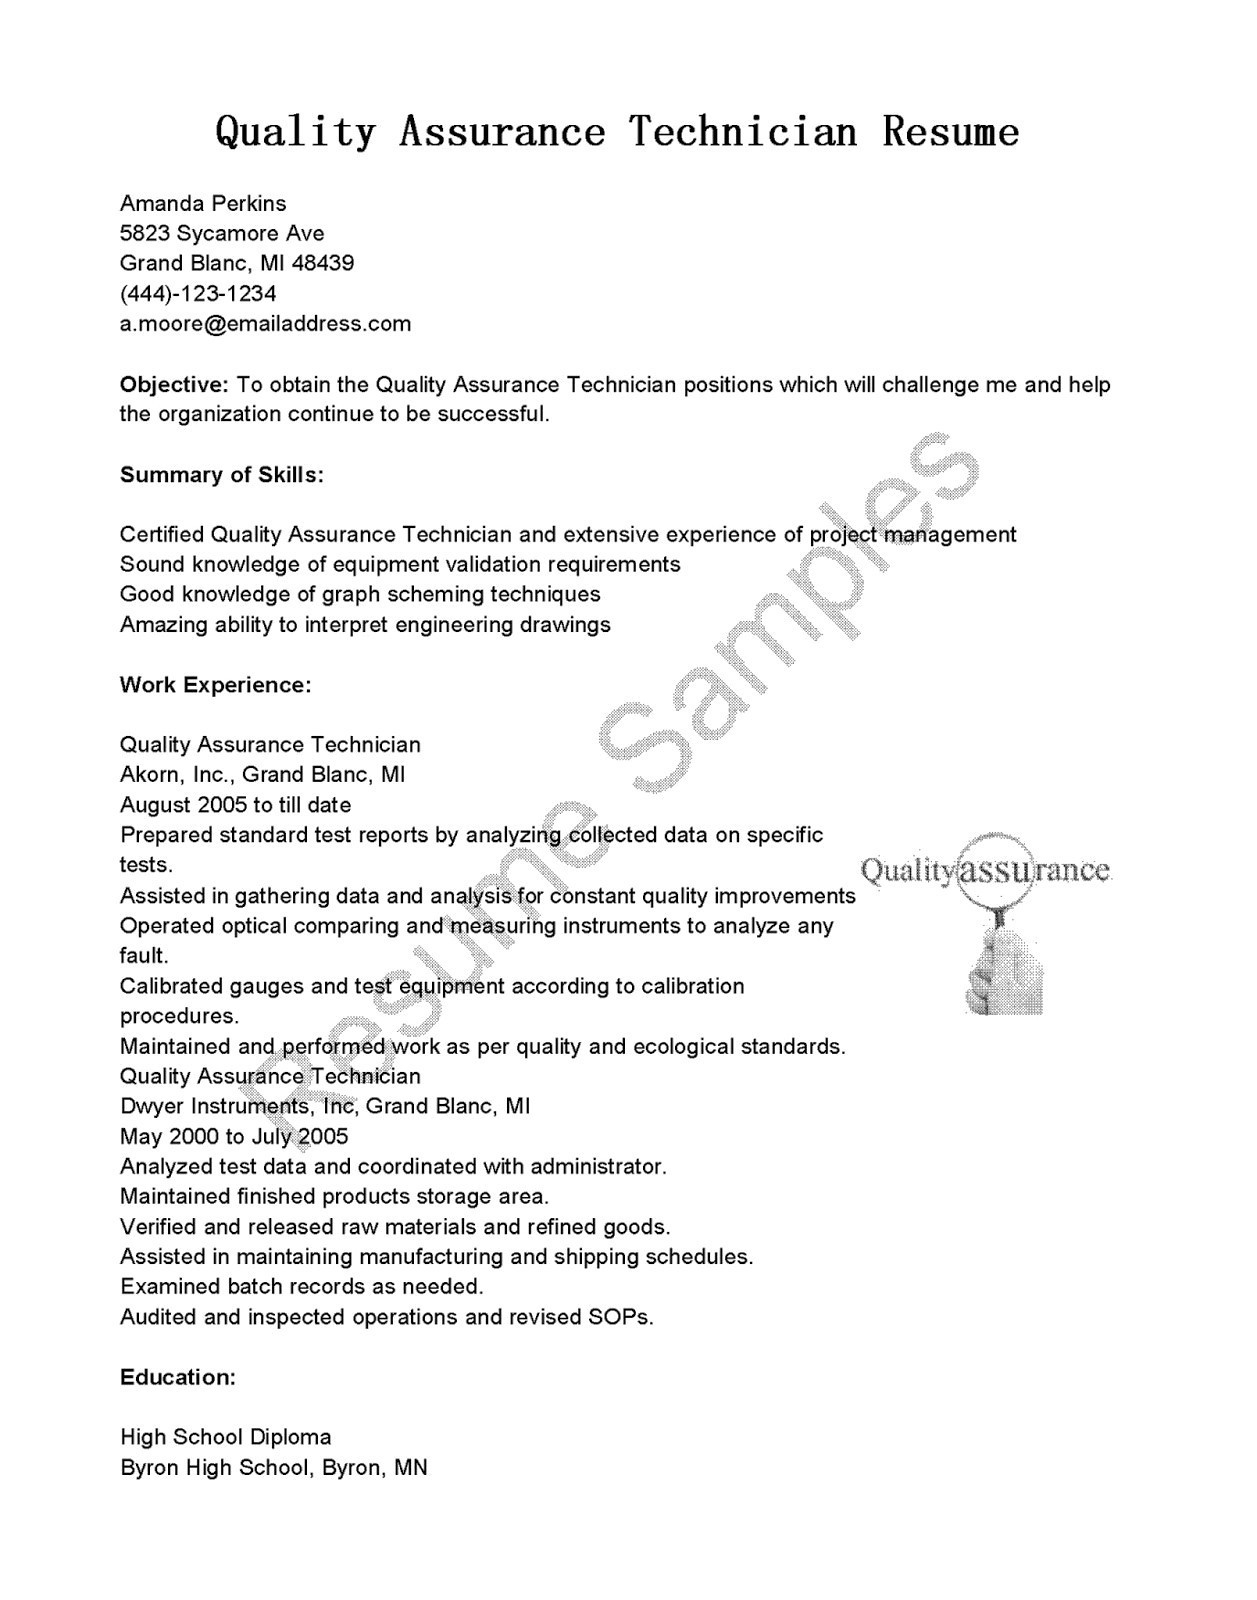 successful cover letter template example-How To Make A Successful Cover Letter Refrence Resumes And Cover Letters Elegant Resume Examples 0d Good Looking 11-f